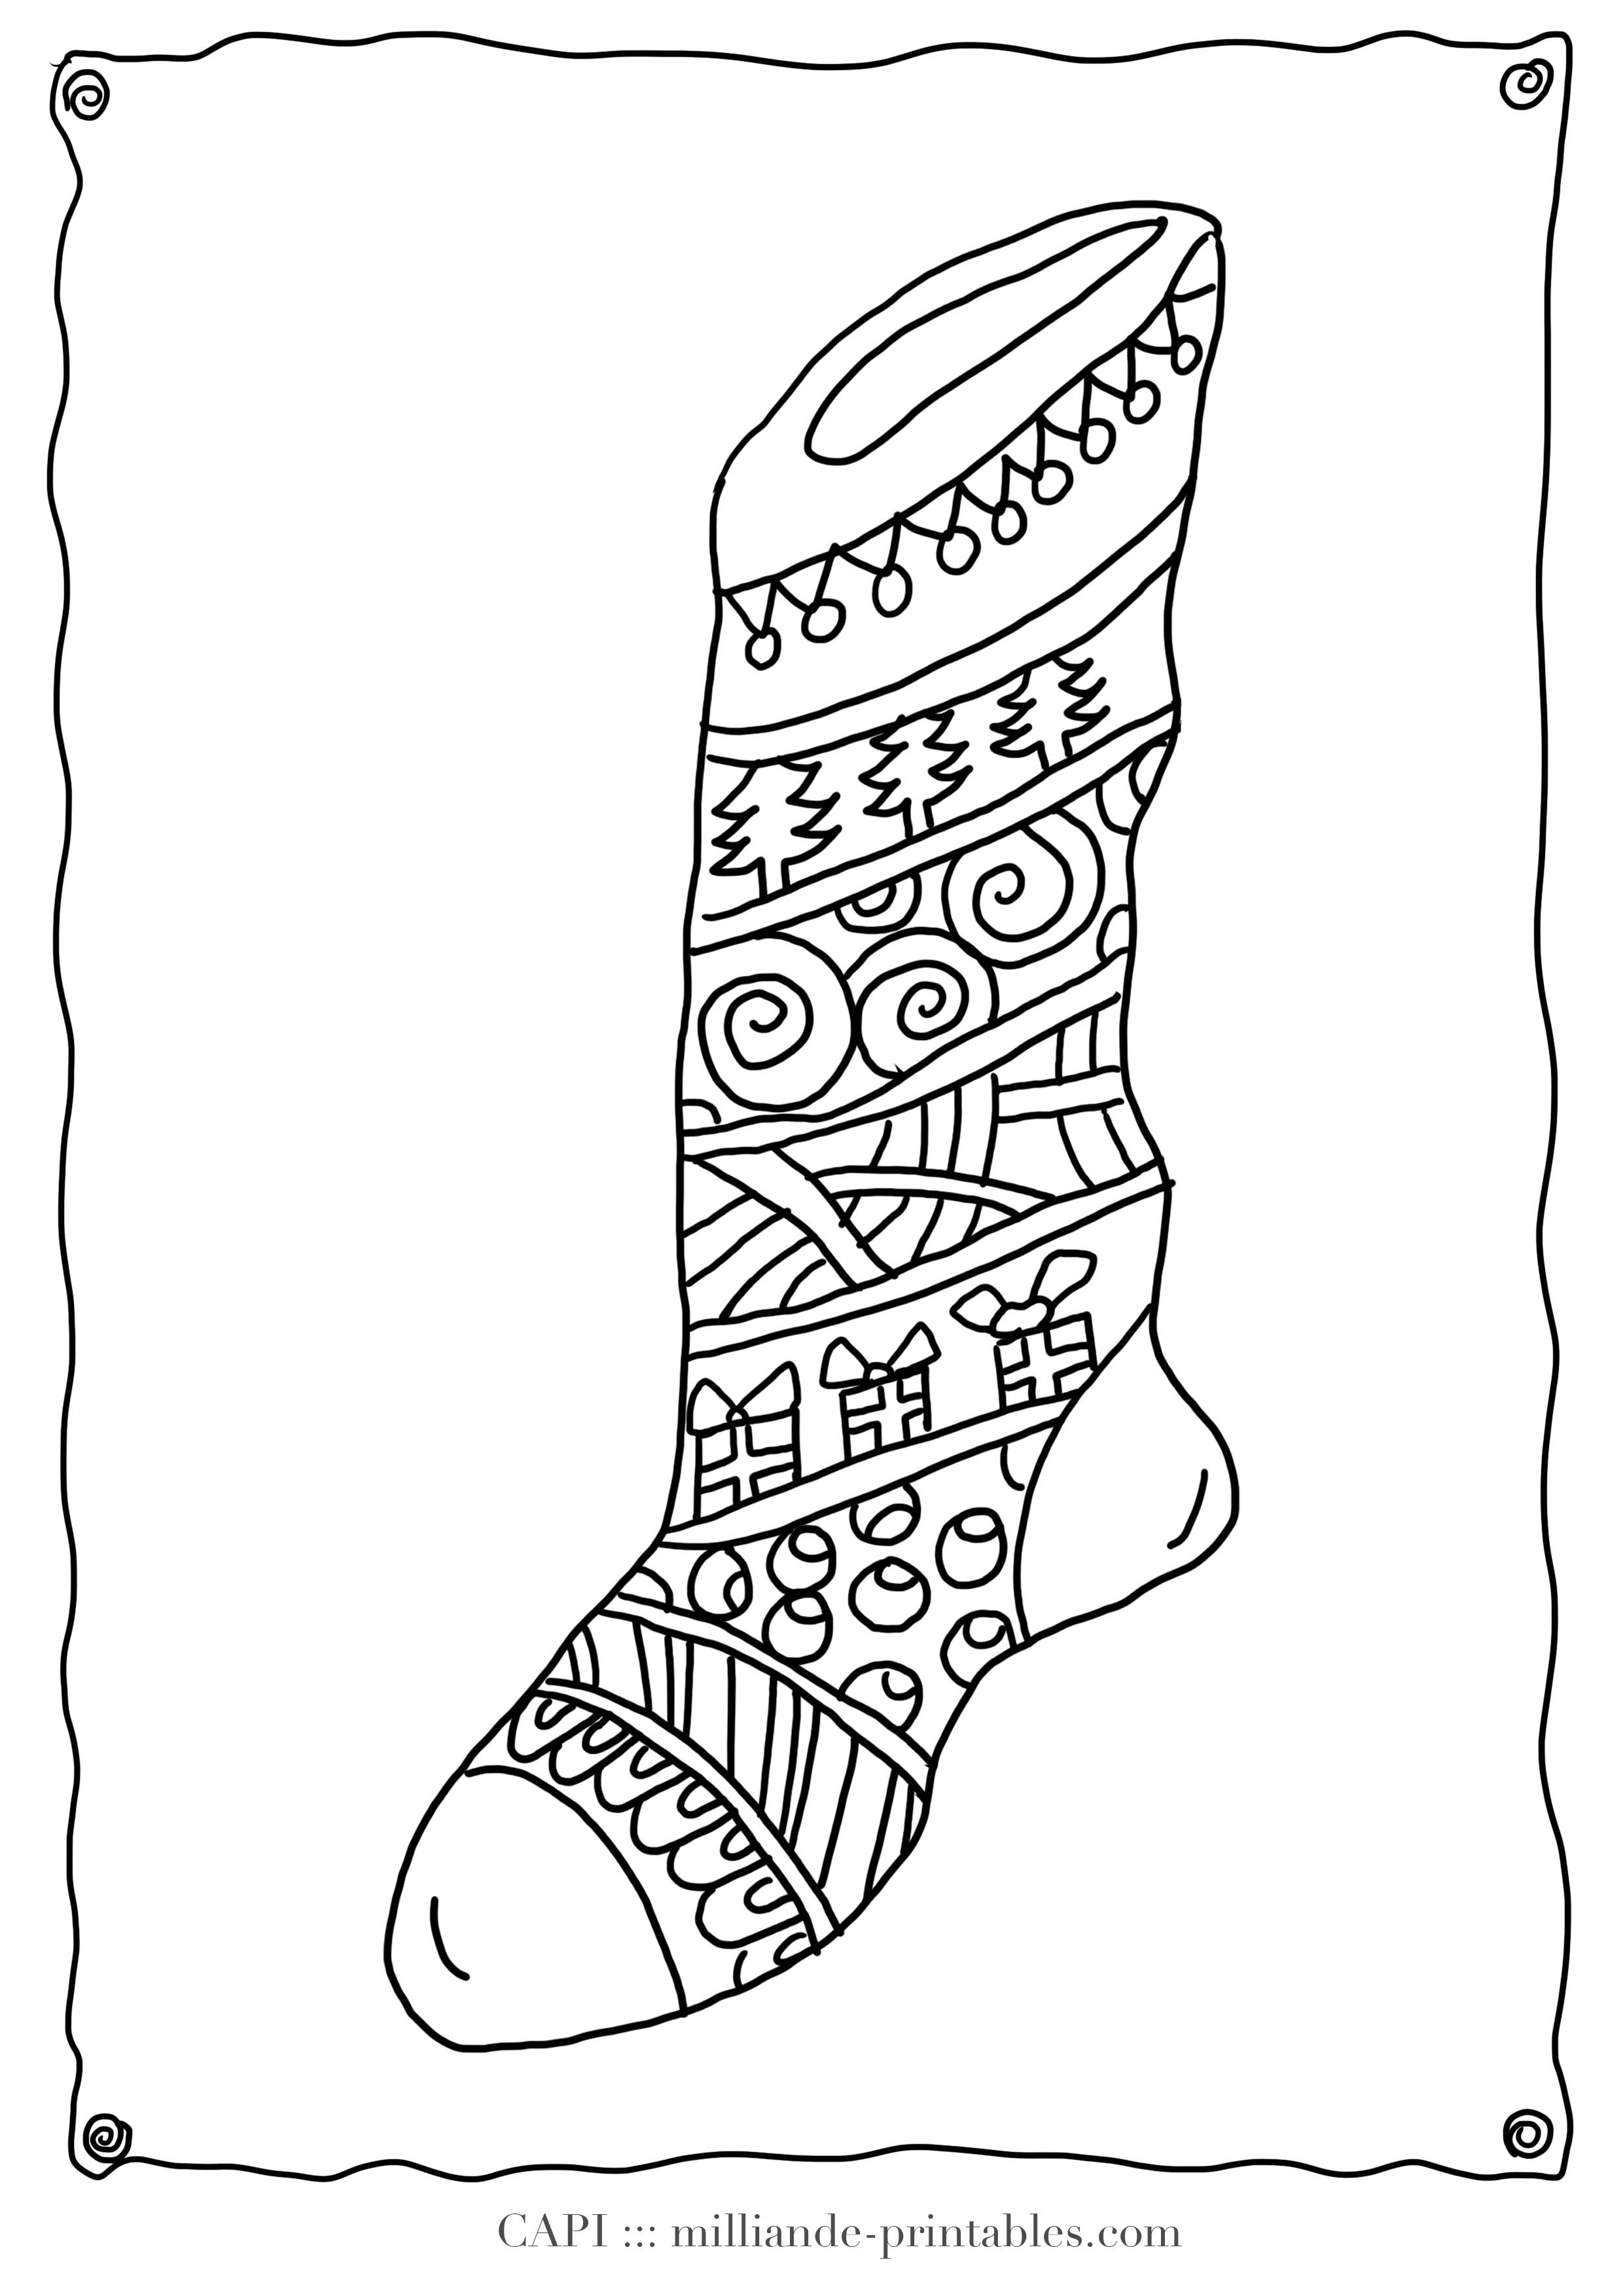 Christmas Coloring Page Stocking Milliandes Original Free Sheets Stockings To Color